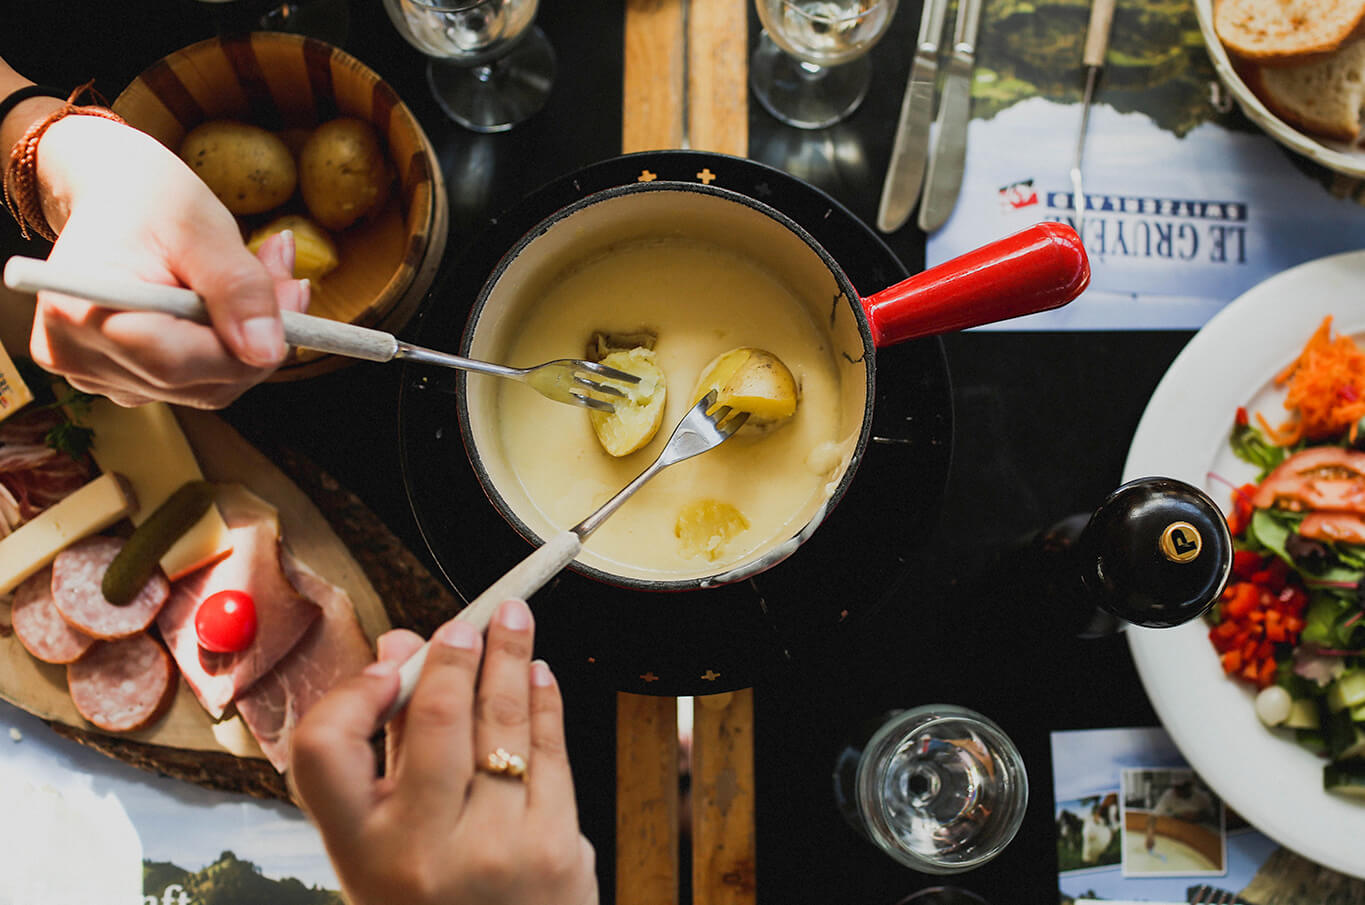 2 hands with forks dipping potatoes into fondue